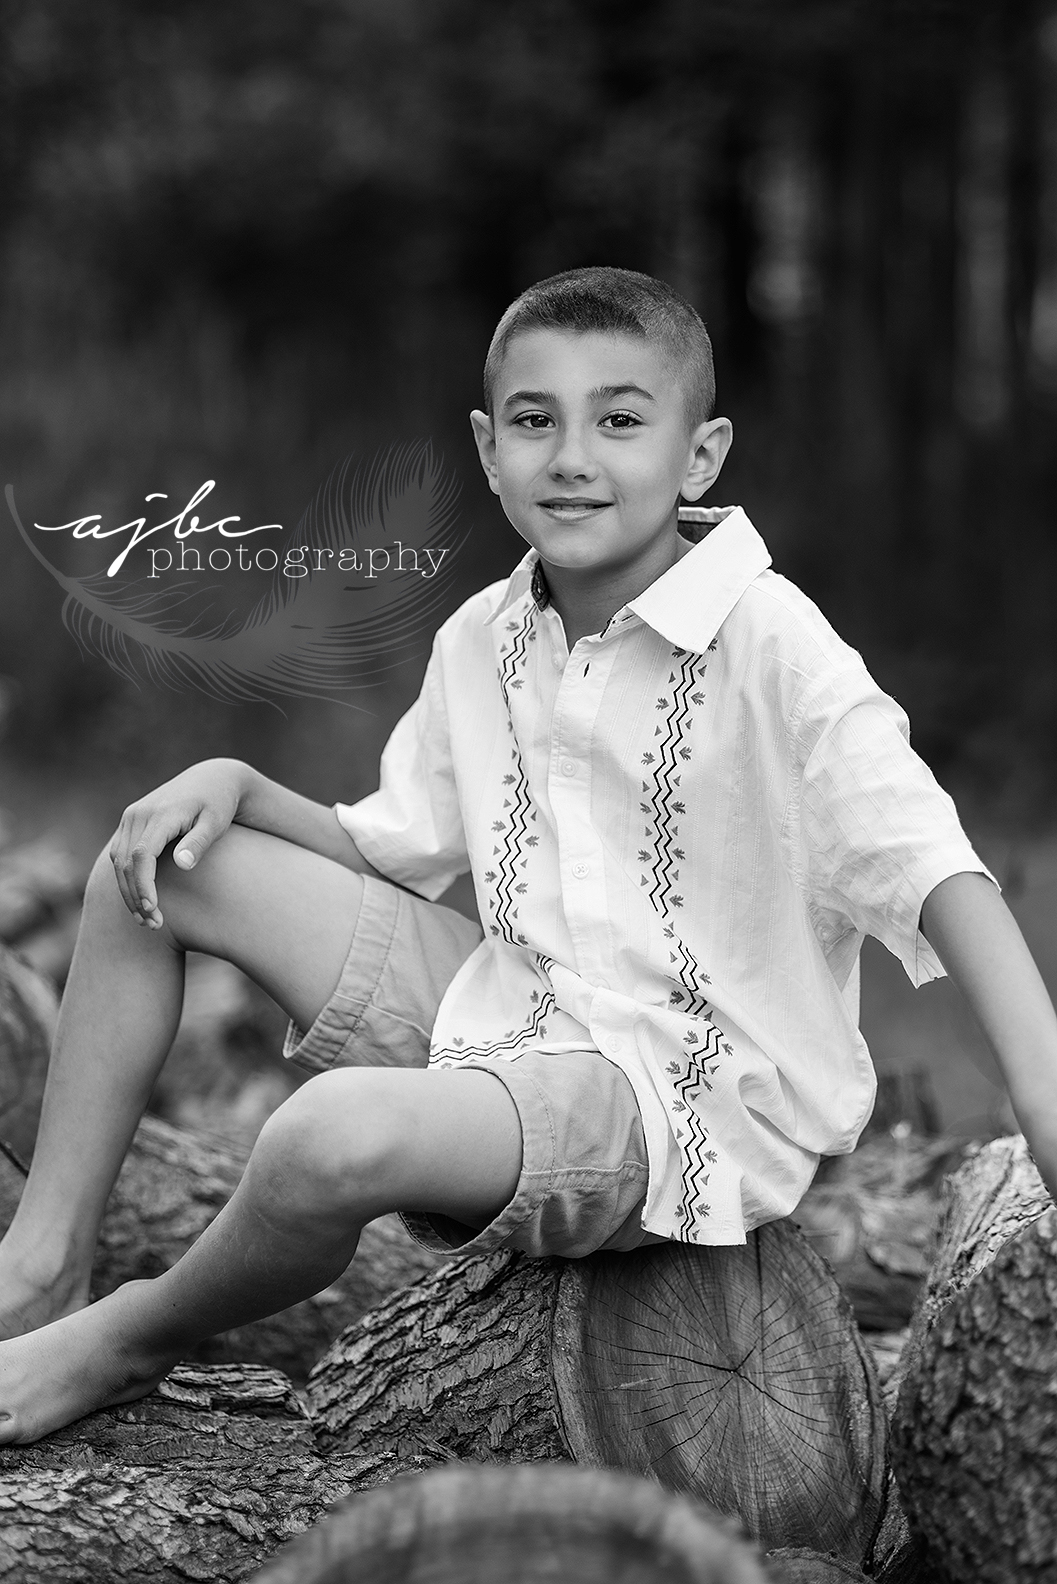 ajbcphotography-porthuron-michigan-family-photographer-outdoors-picnic-brother-sister-mother-portraits-child-photographer-family-fun-outdoor-shoot.jpg